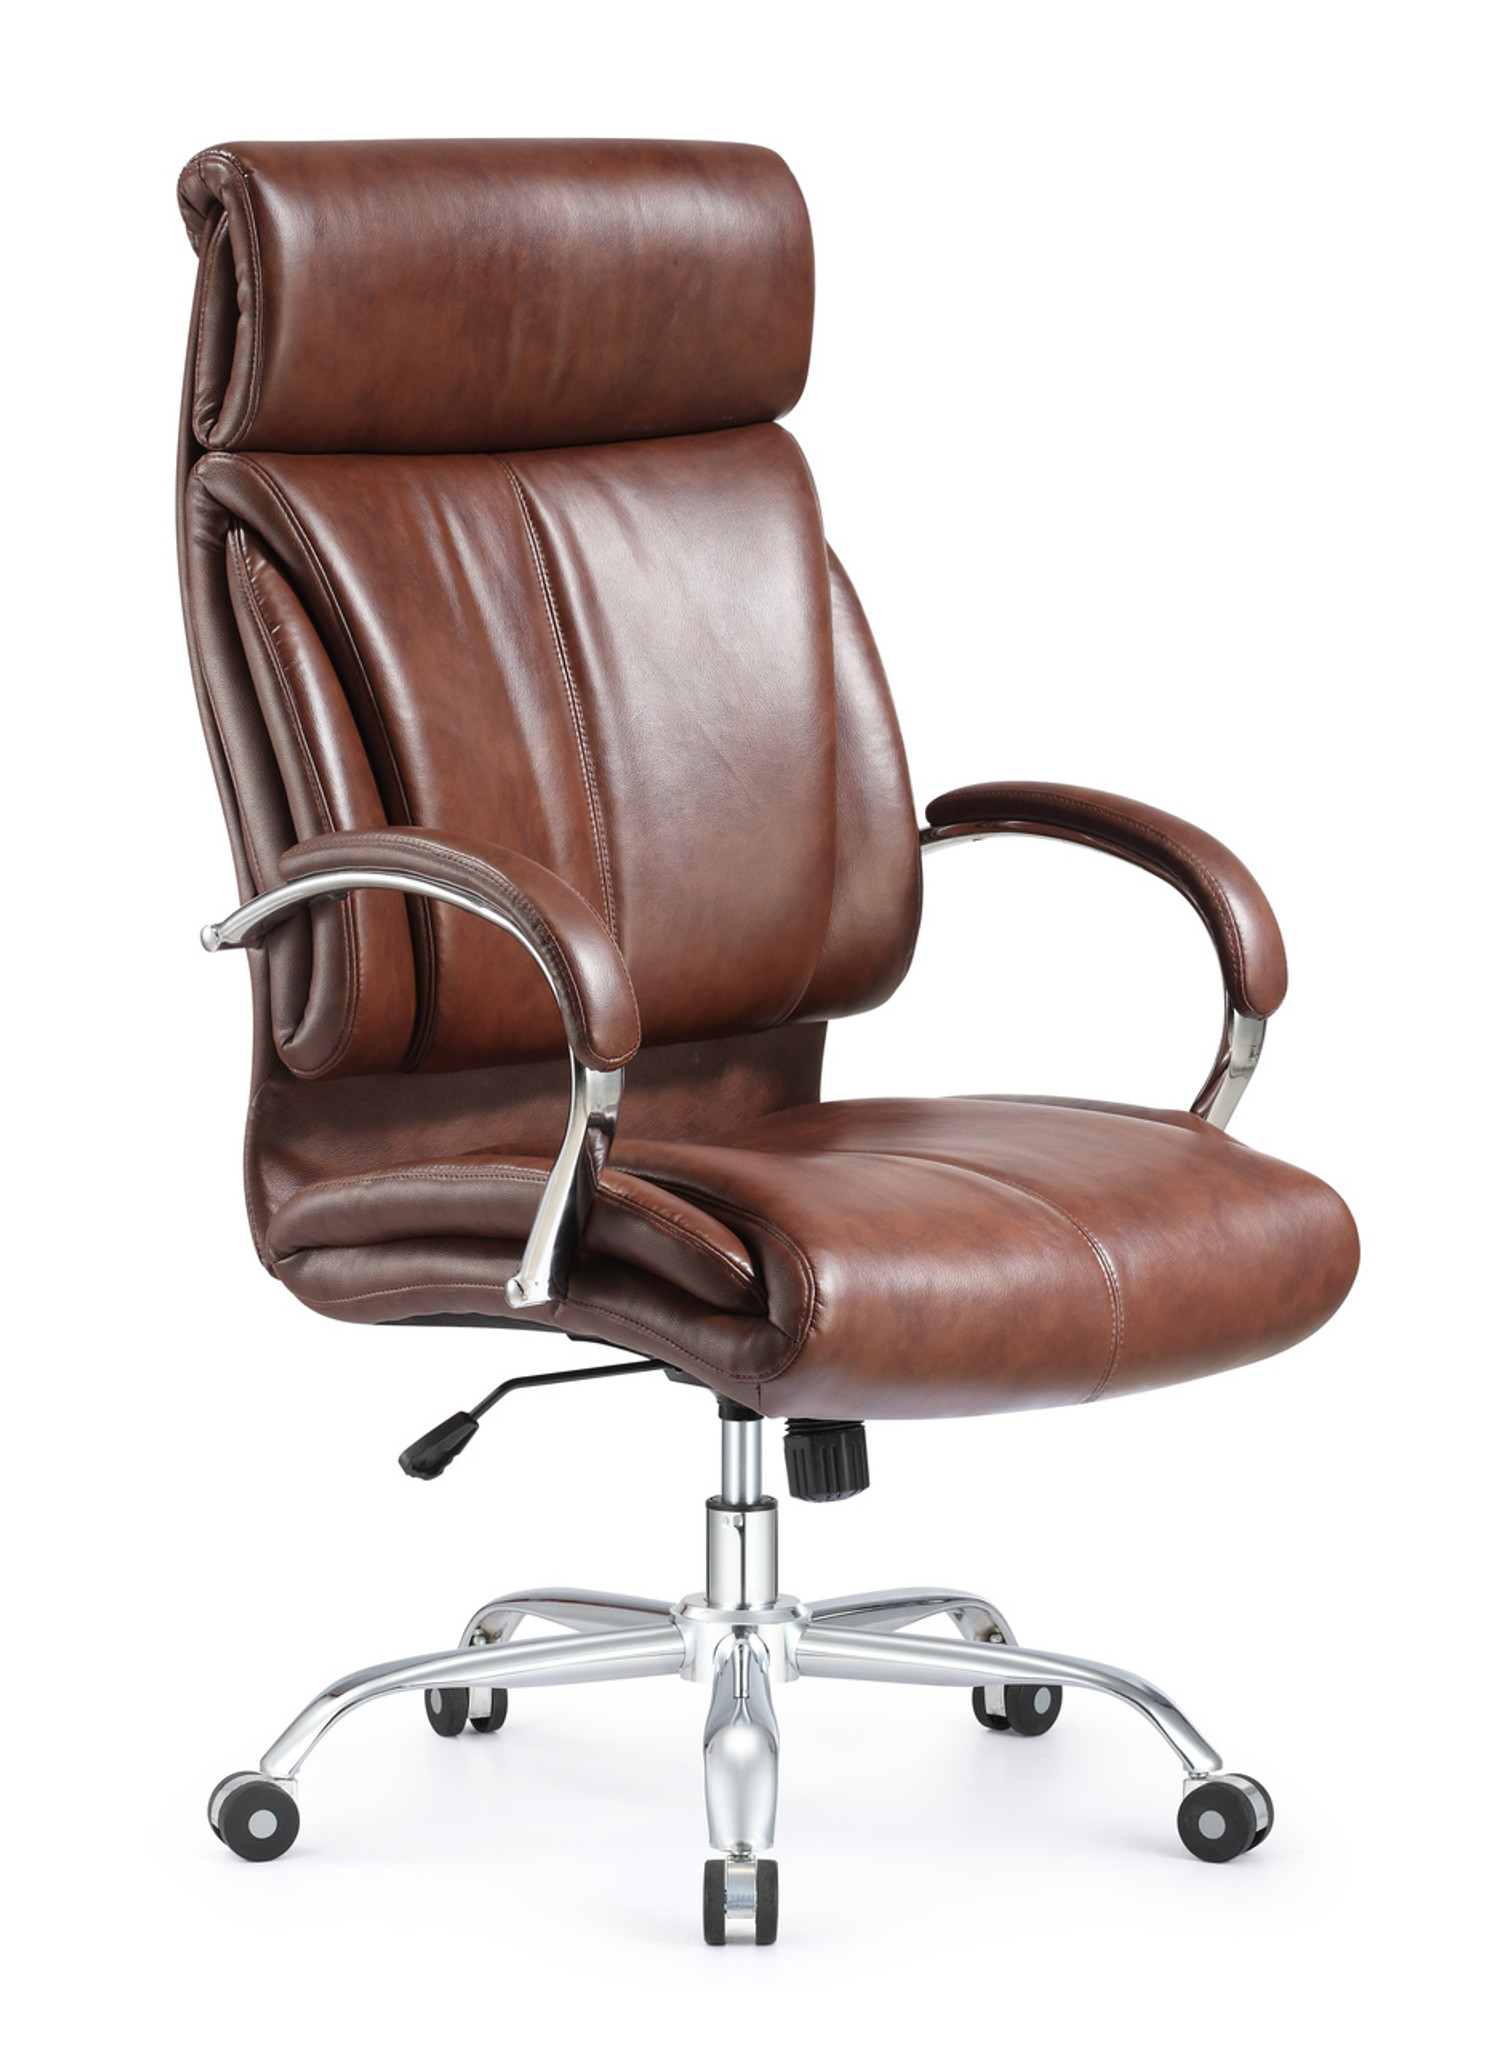 Brown leather office chair Industrial Ergonomic Style And Vintage High Back Leather Office Chair Brown Leather Chair Orlando Office Furniture Ergonomic Style And Vintage High Back Leather Office Chair Brown